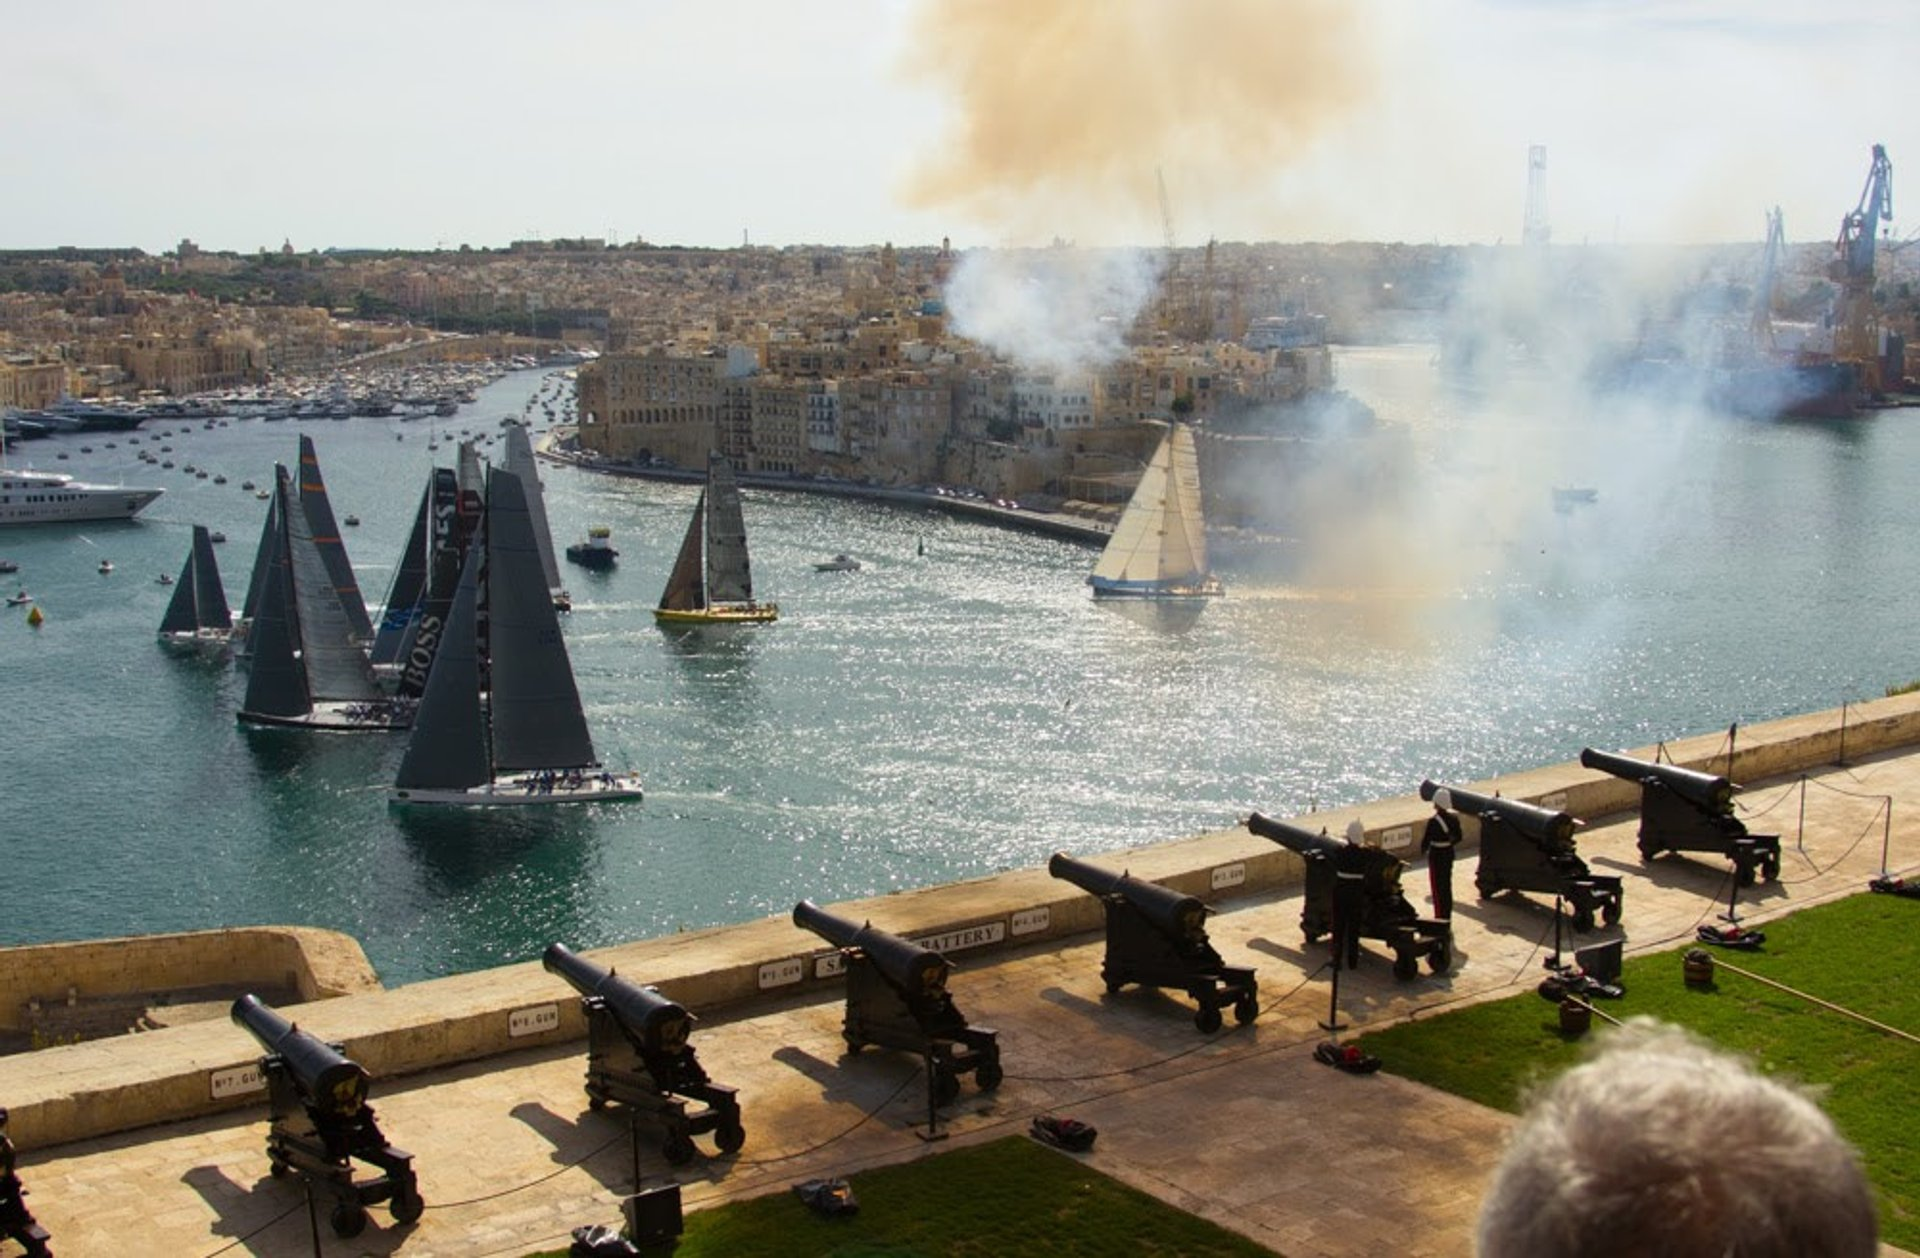 Best time to see Rolex Middle Sea Race in Malta 2020